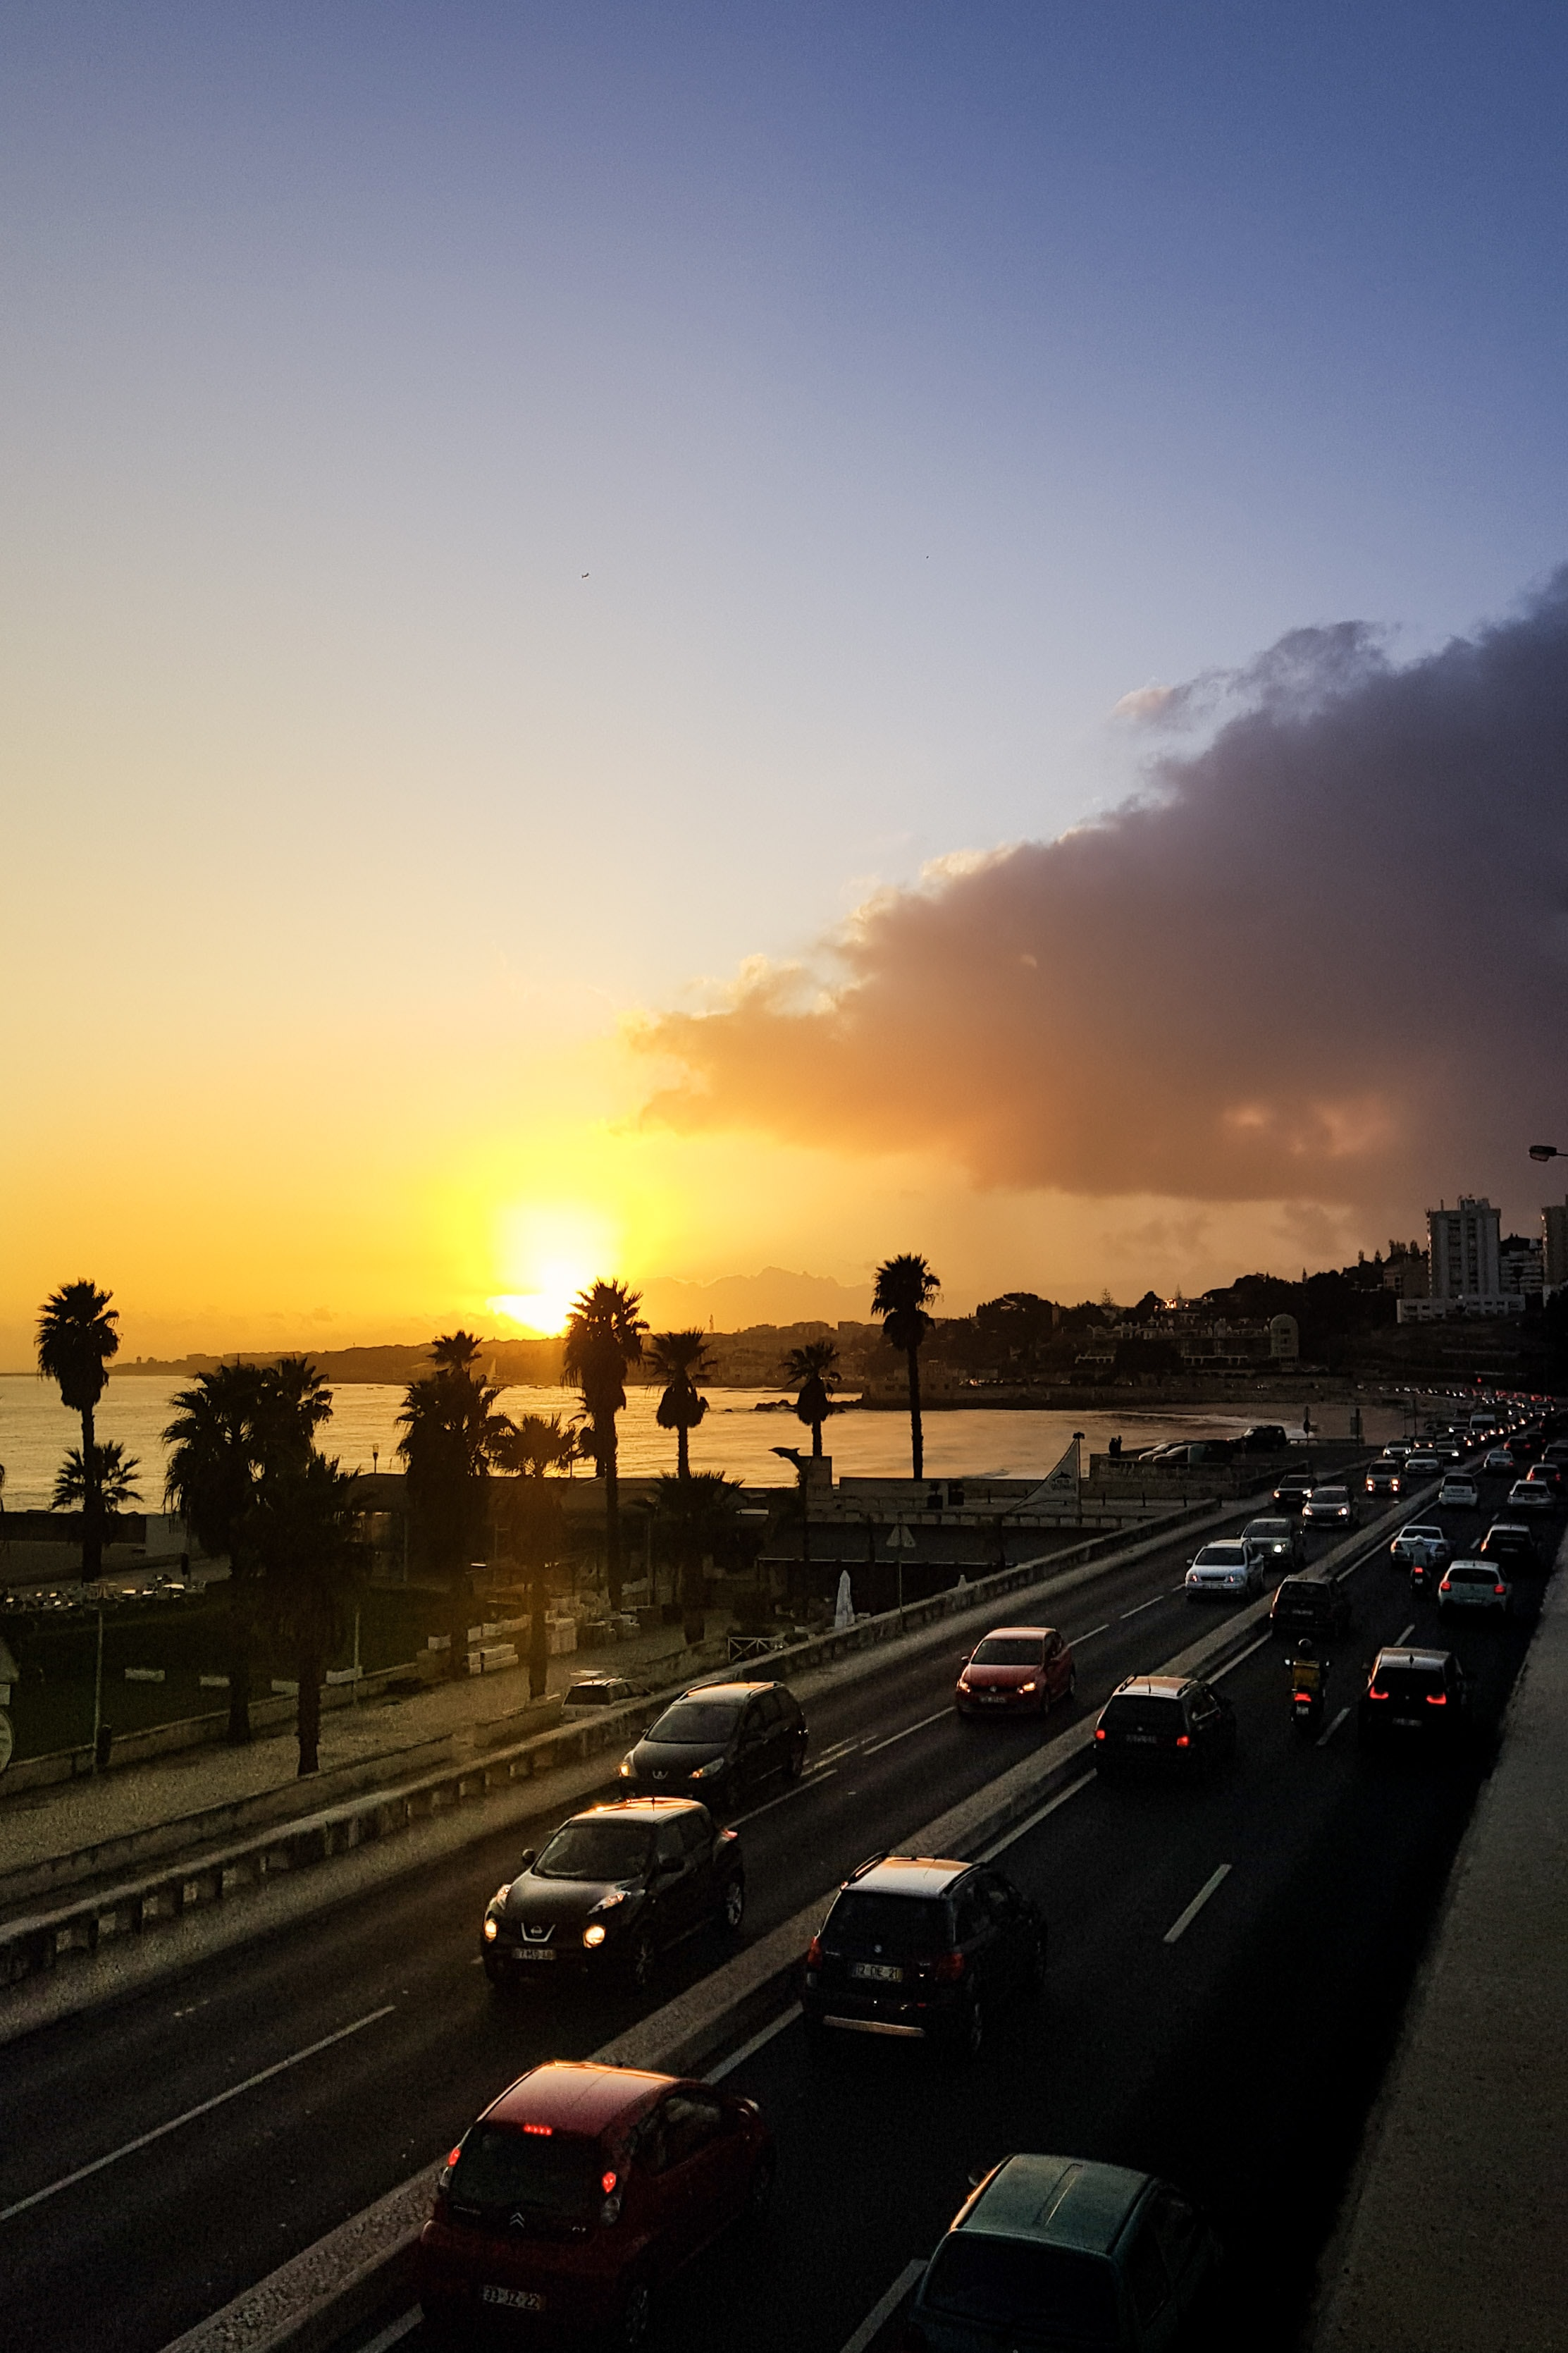 Highway Sunset Pictures Download Free Images On Unsplash